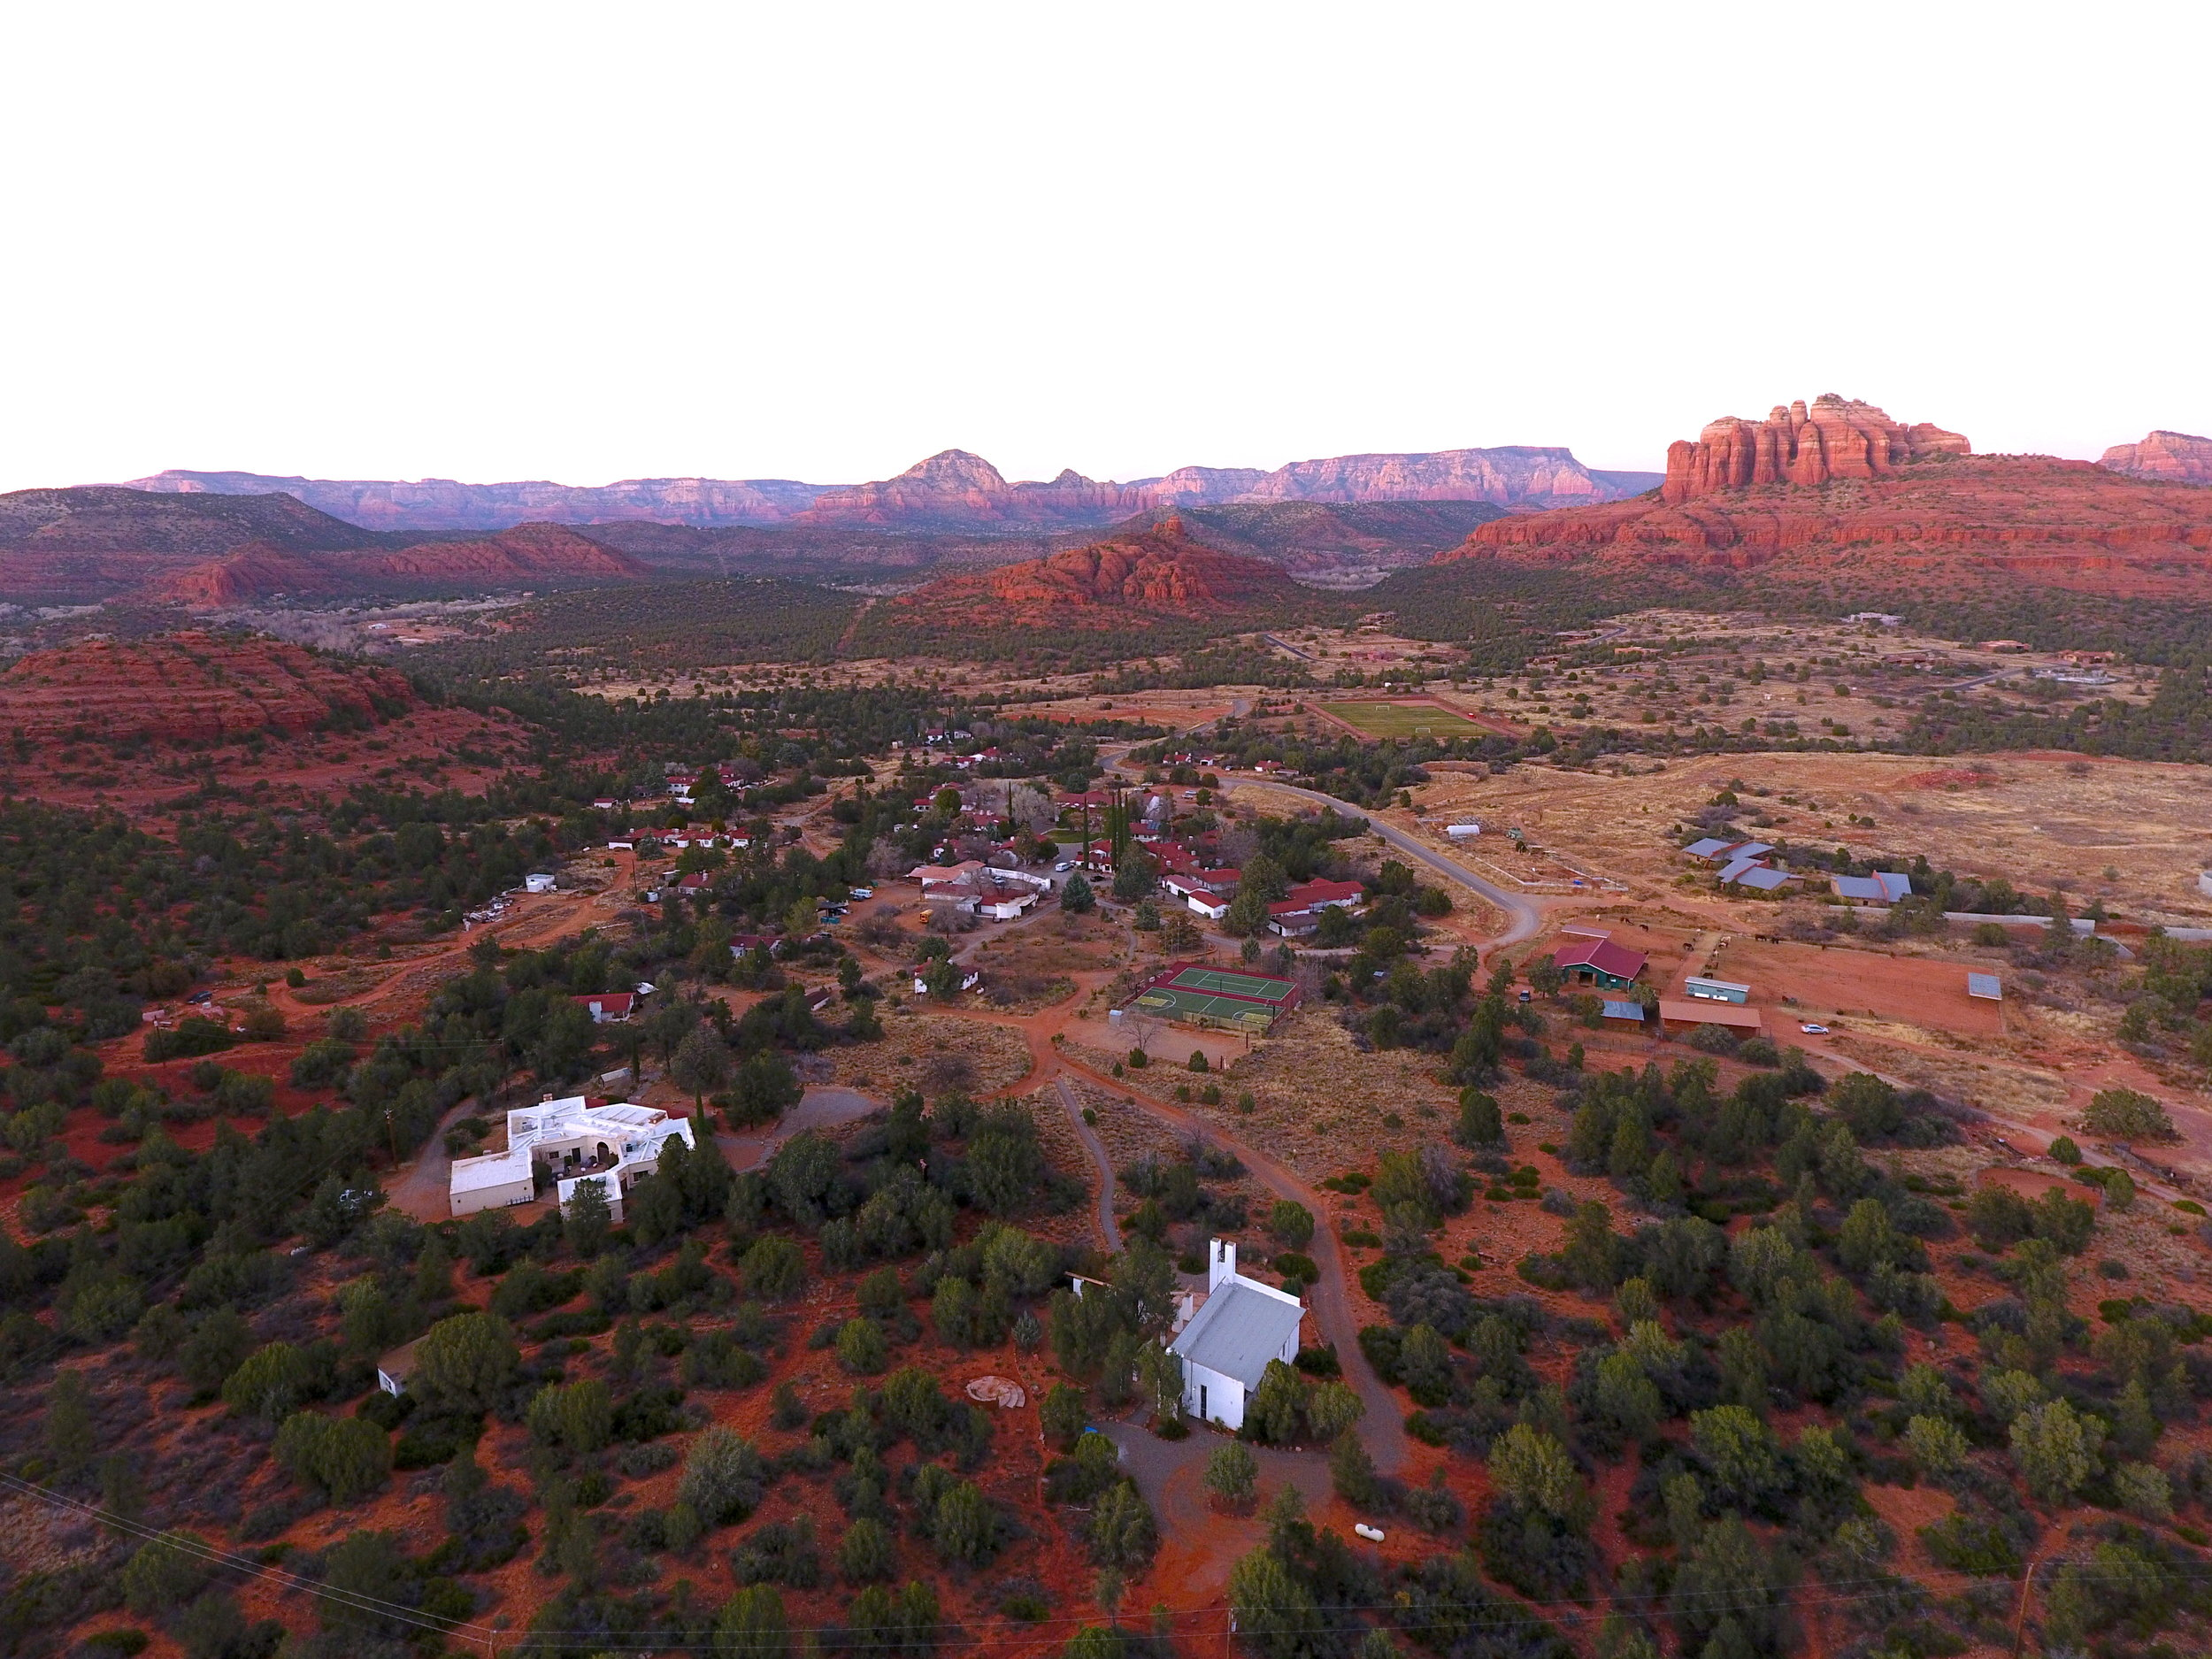 We believe people are the most inspired, the most alive, the most creative when transported to places that inspire awe. Sedona does just that. At Verde Valley School you can think big and rediscover your world. - Place Matters